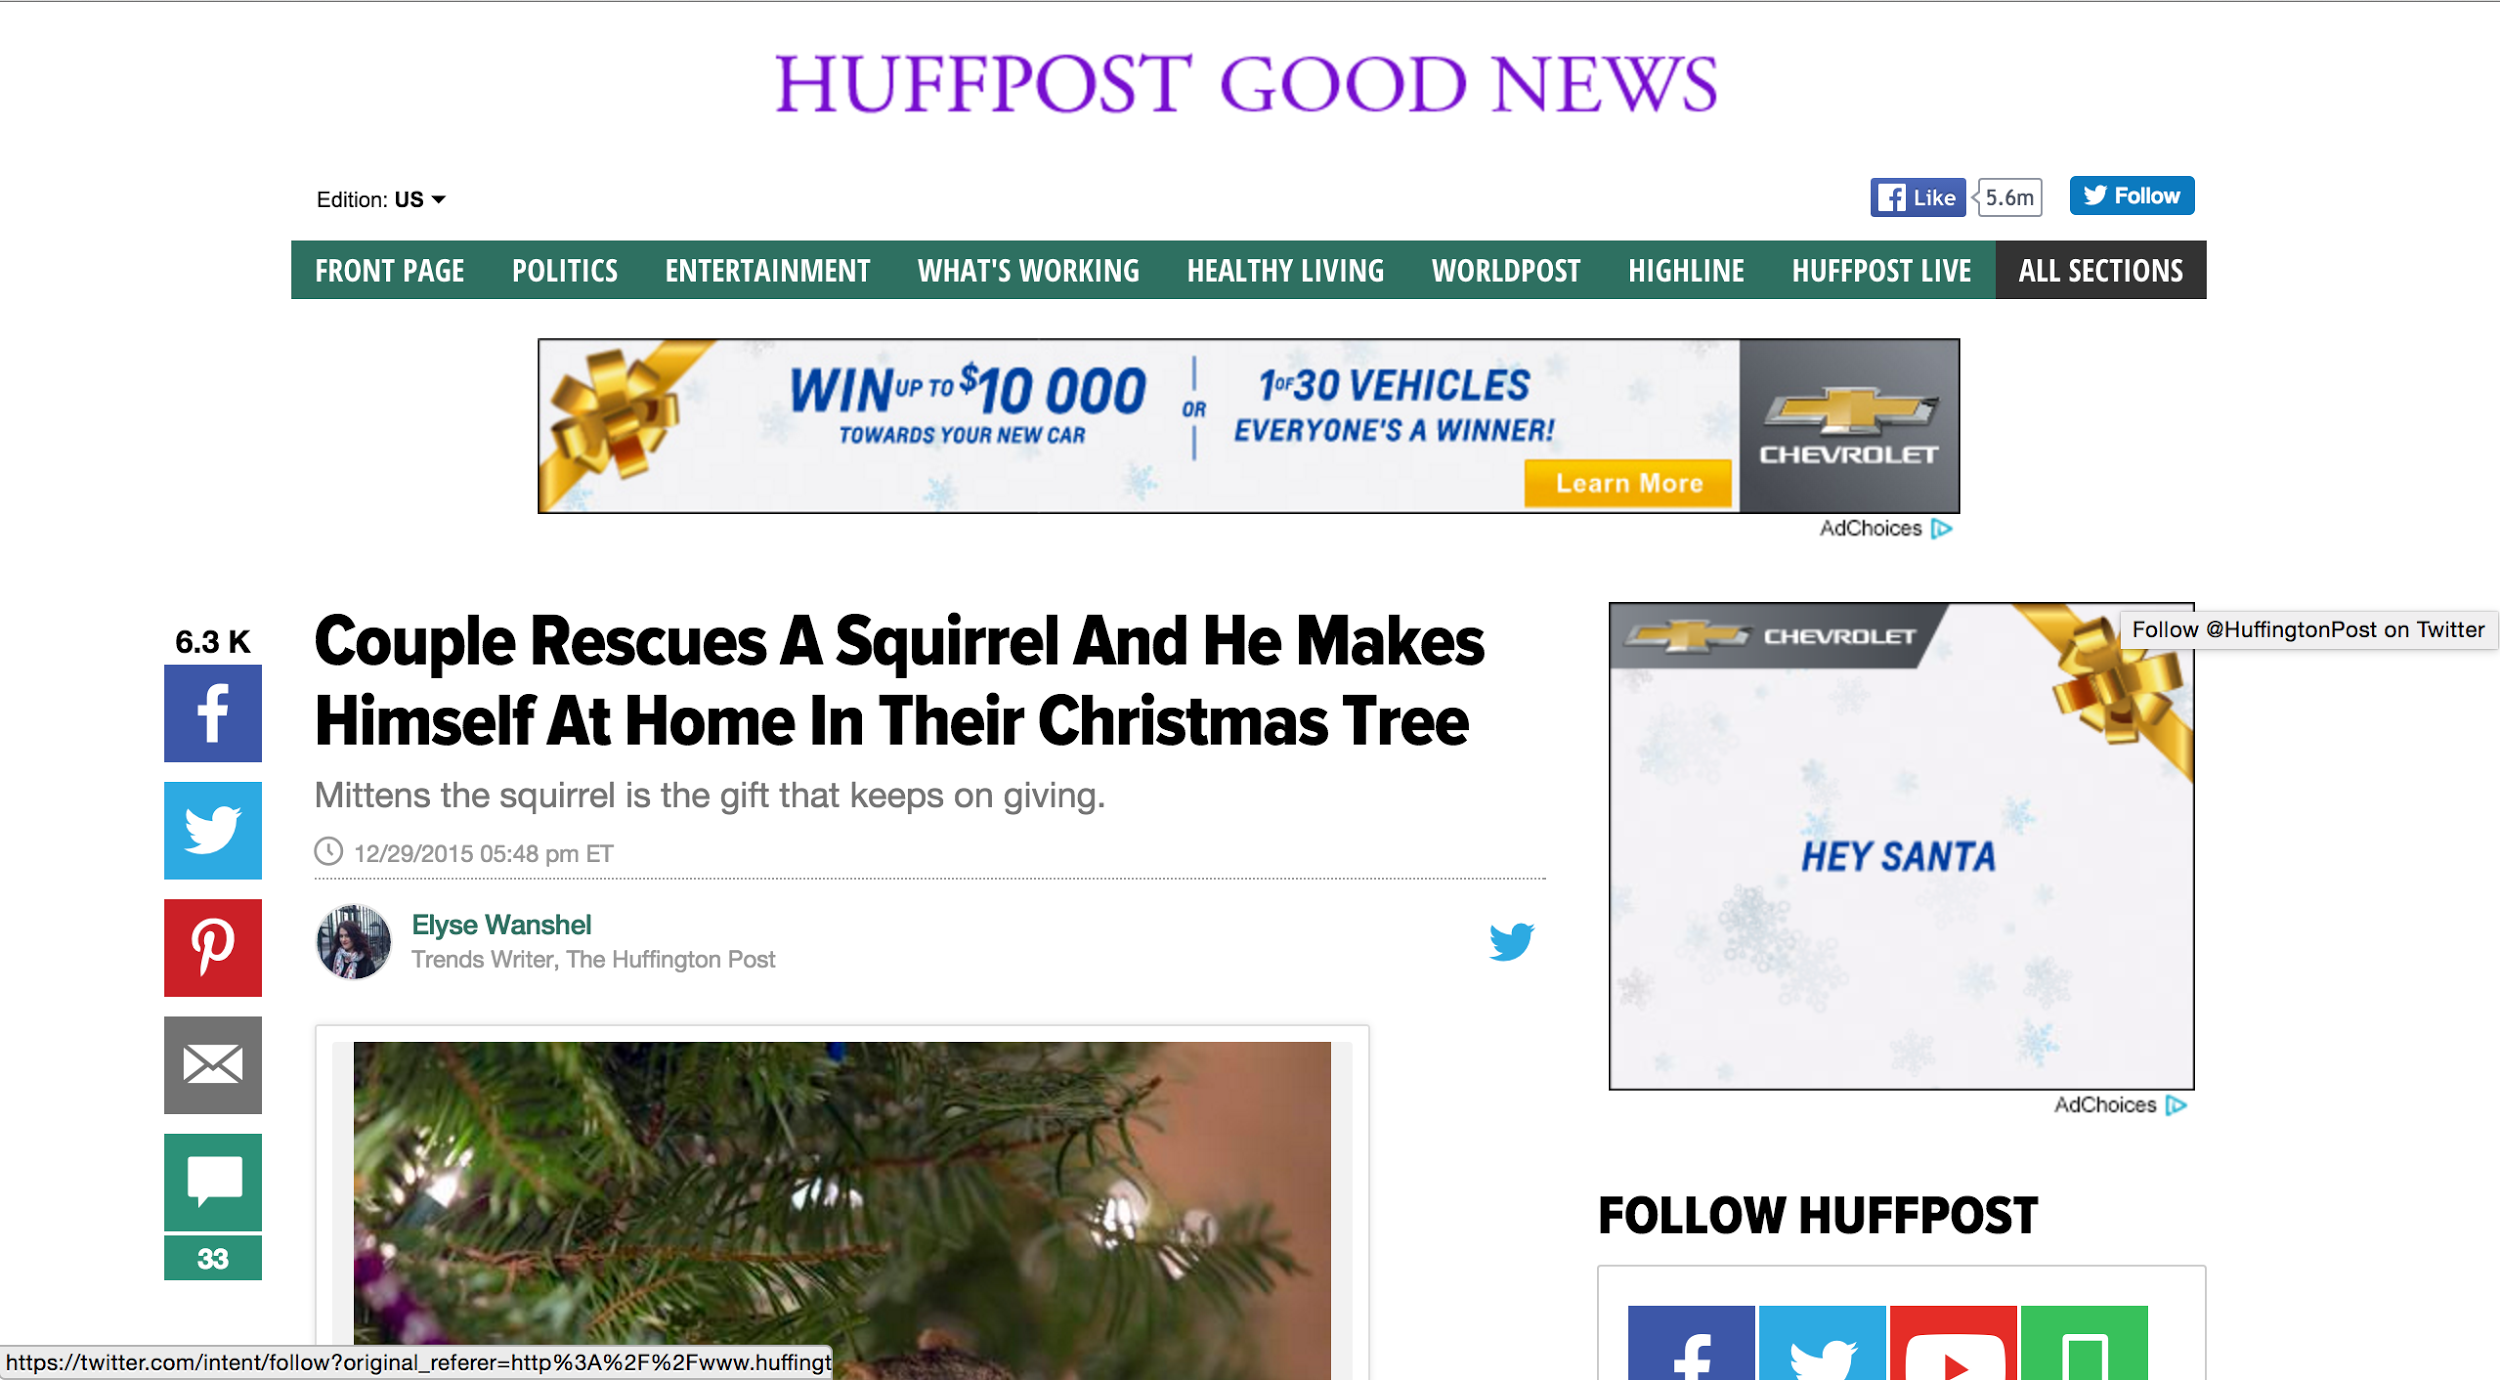 Screenshot showing the headline on a content piece by Huffpost Good News